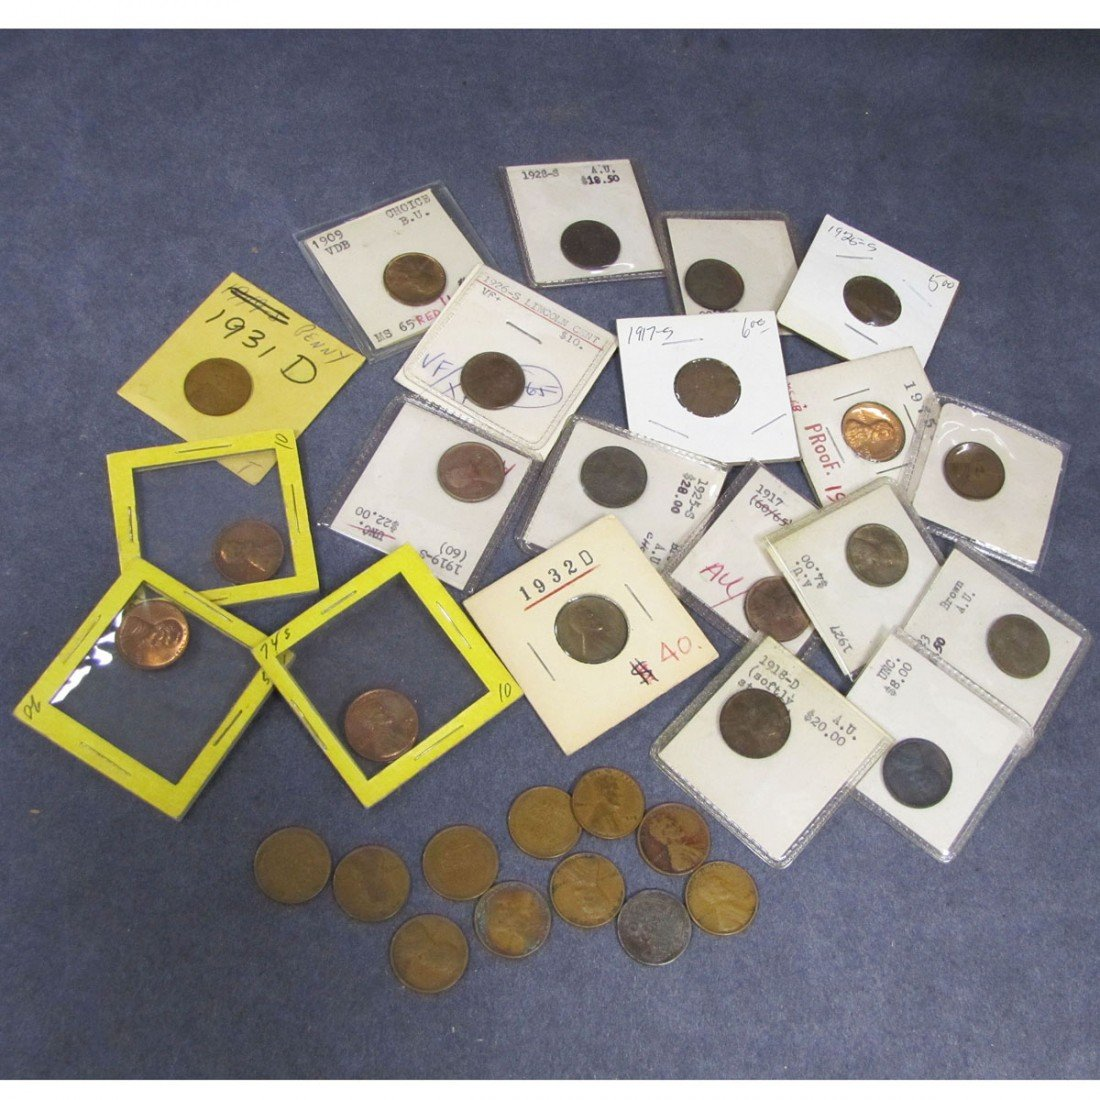 17: LOT (31) ASSORTED U.S. LINCOLN HEAD CENT COINS